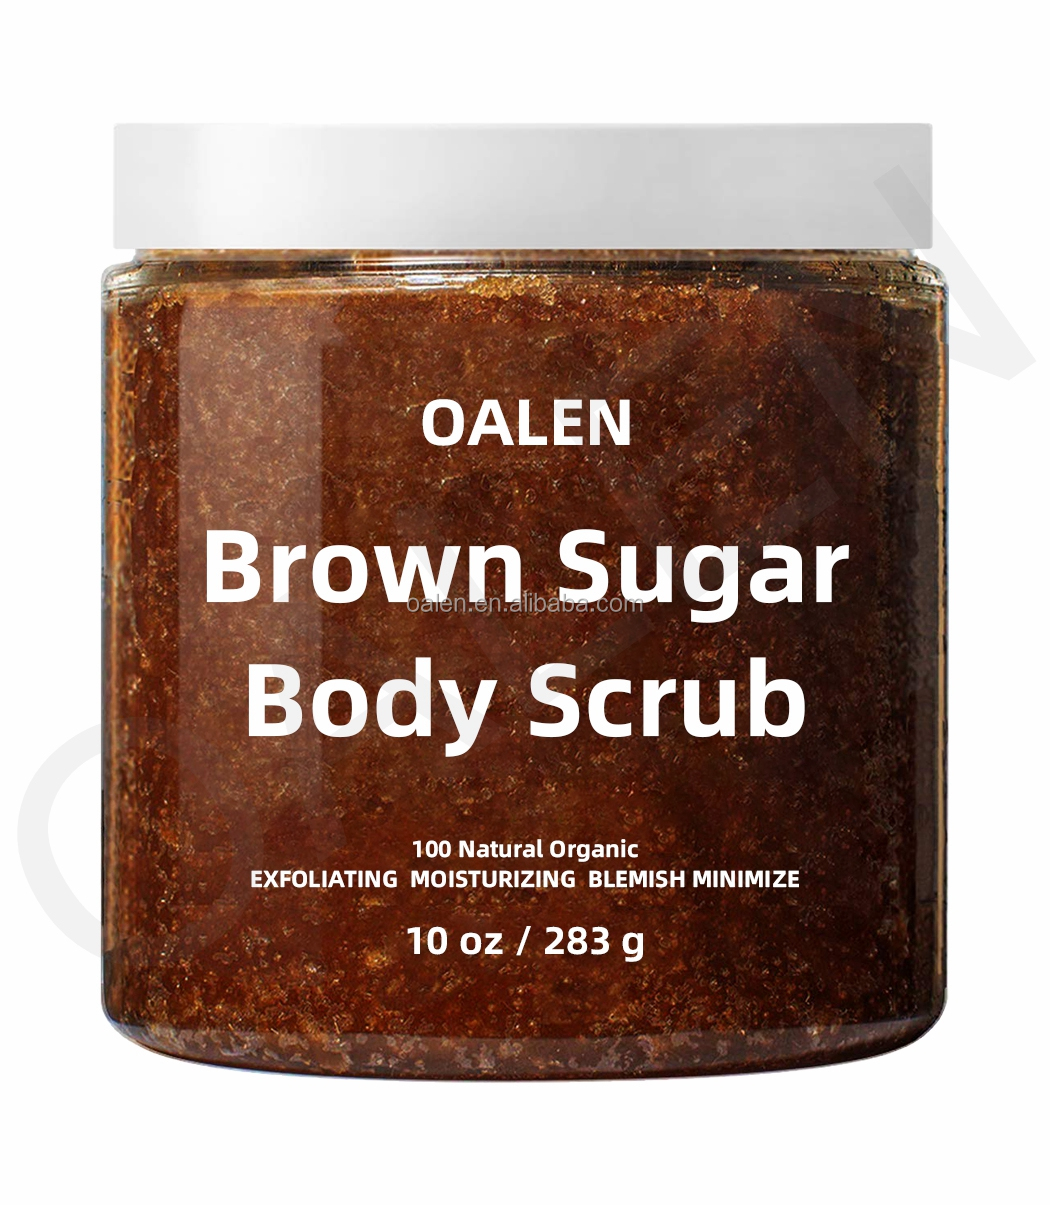 Brown Sugar Exfoliating Face Body Scrub Reduce Acne Scars Stretch Marks Deep Cleansing Scrub